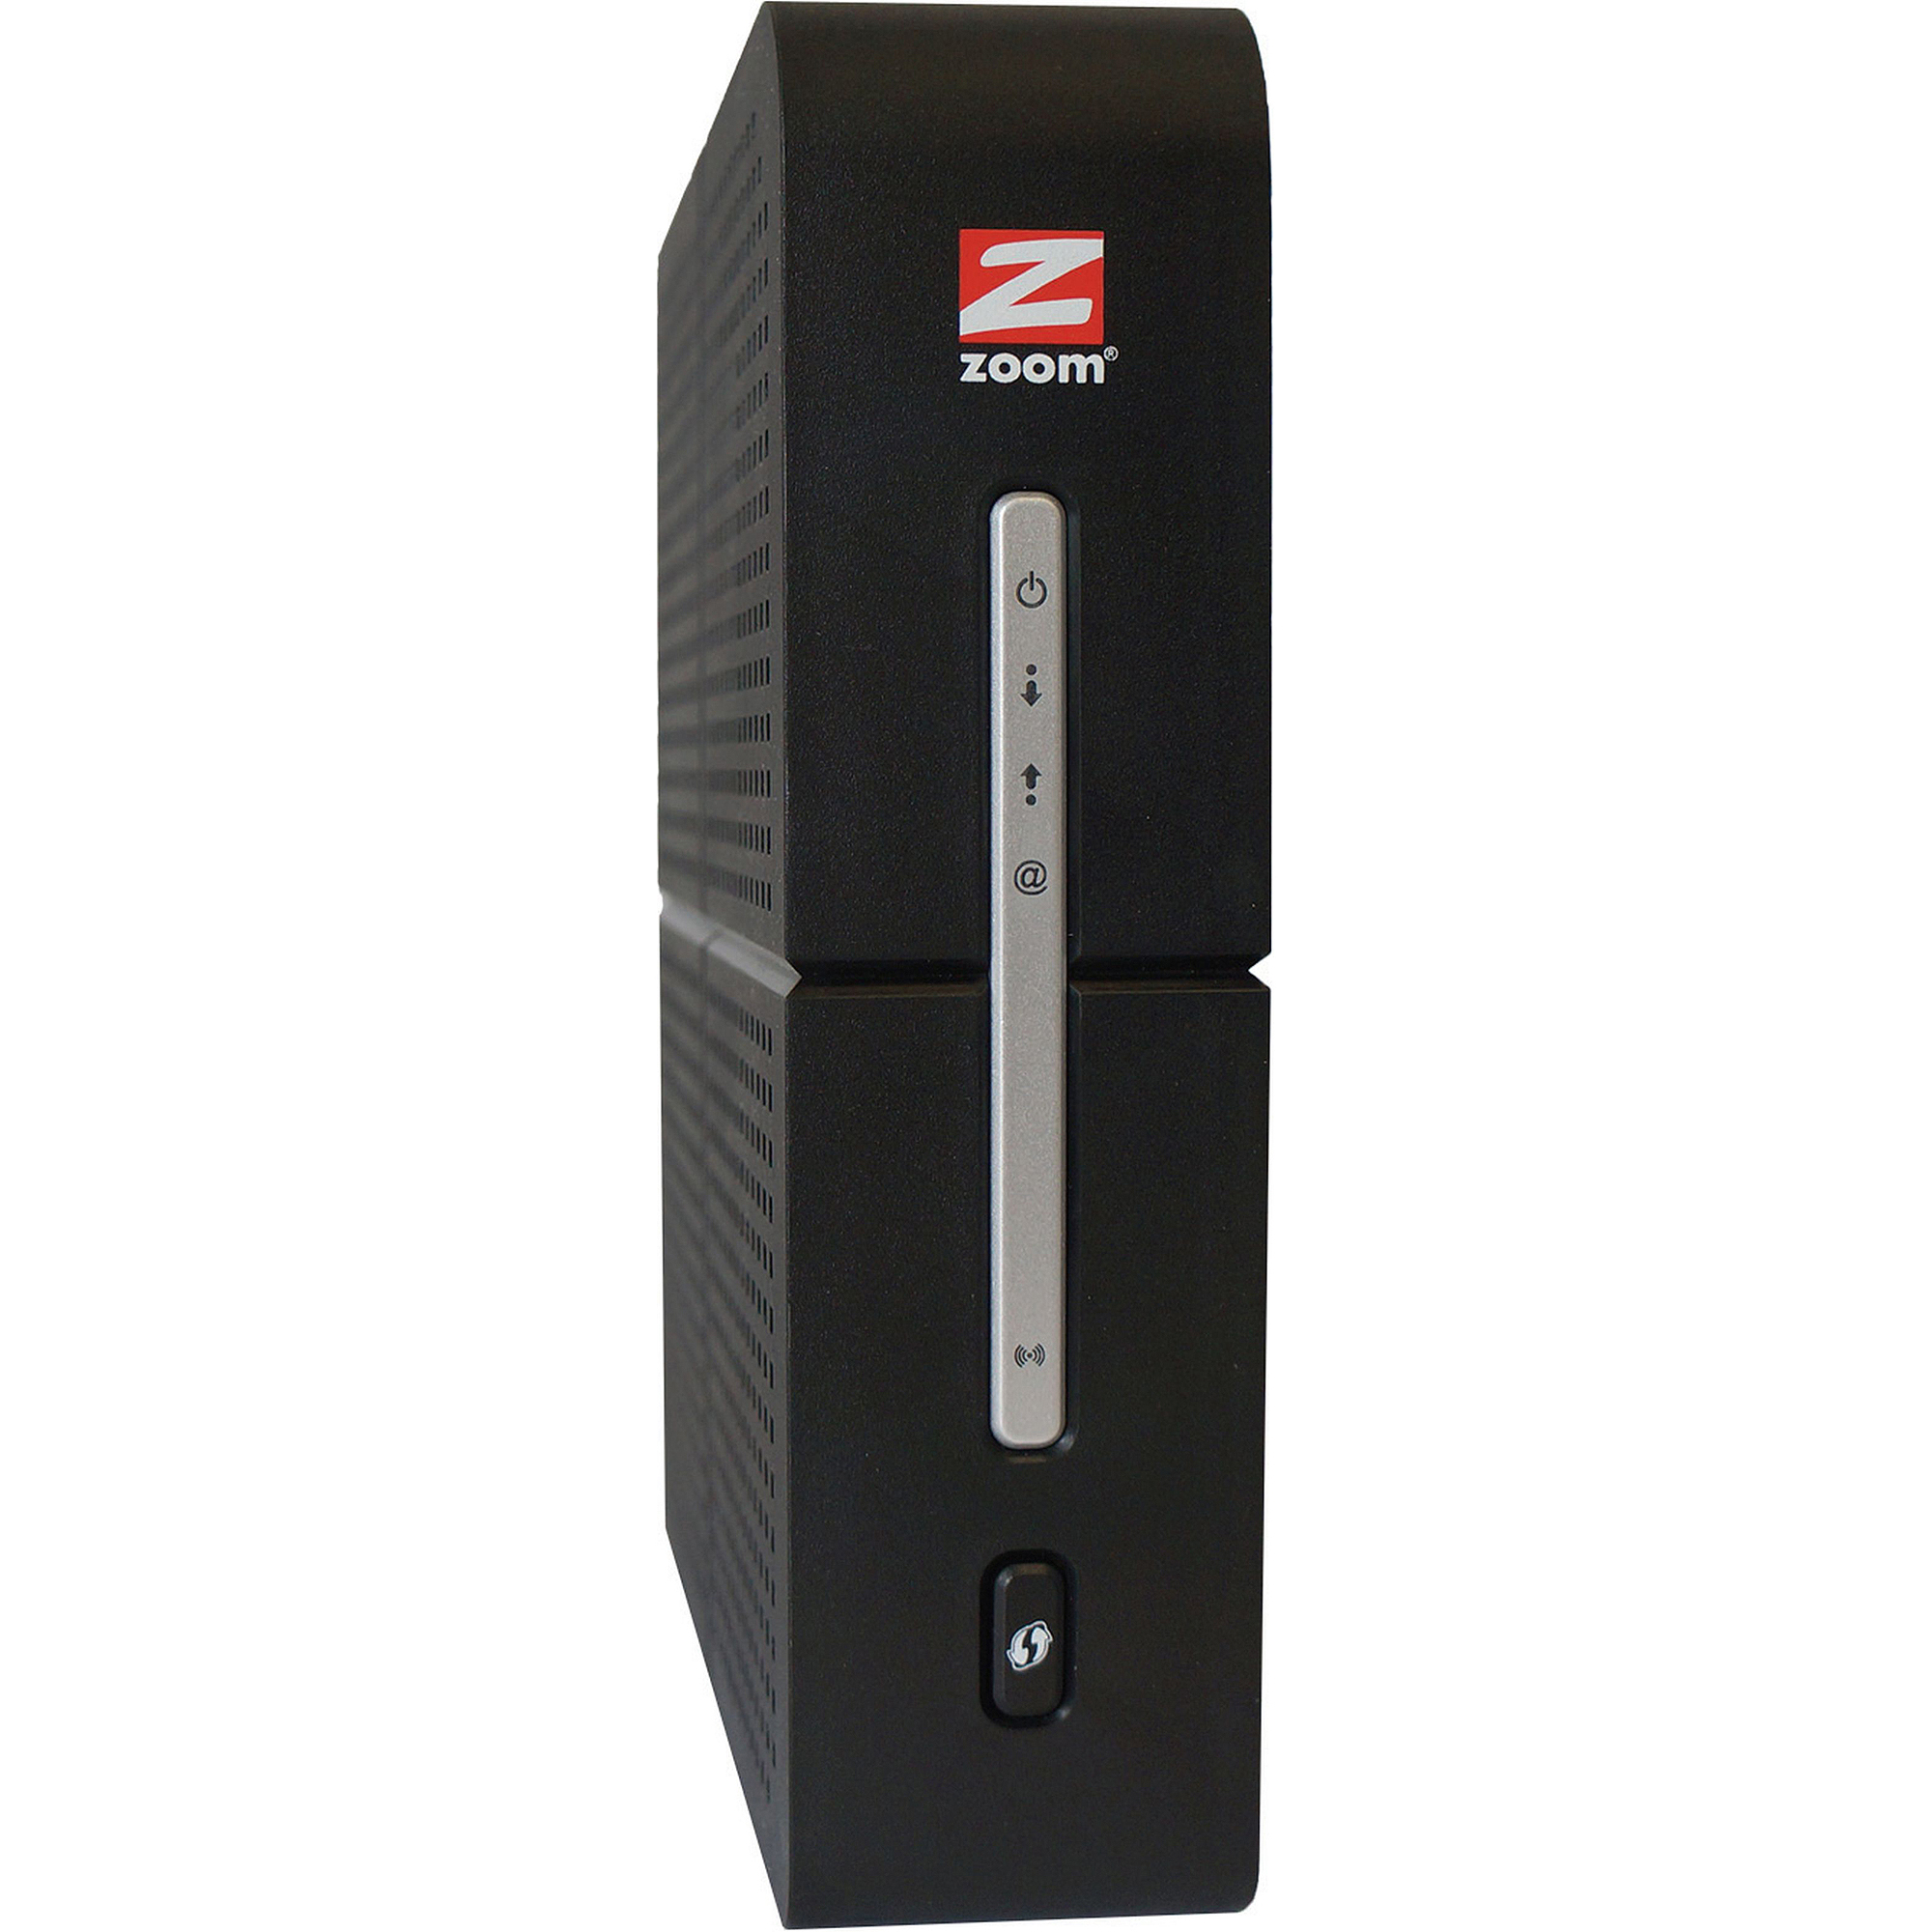 Zoom Cable Modem/Router with High-Performance Wireless 802.11ac